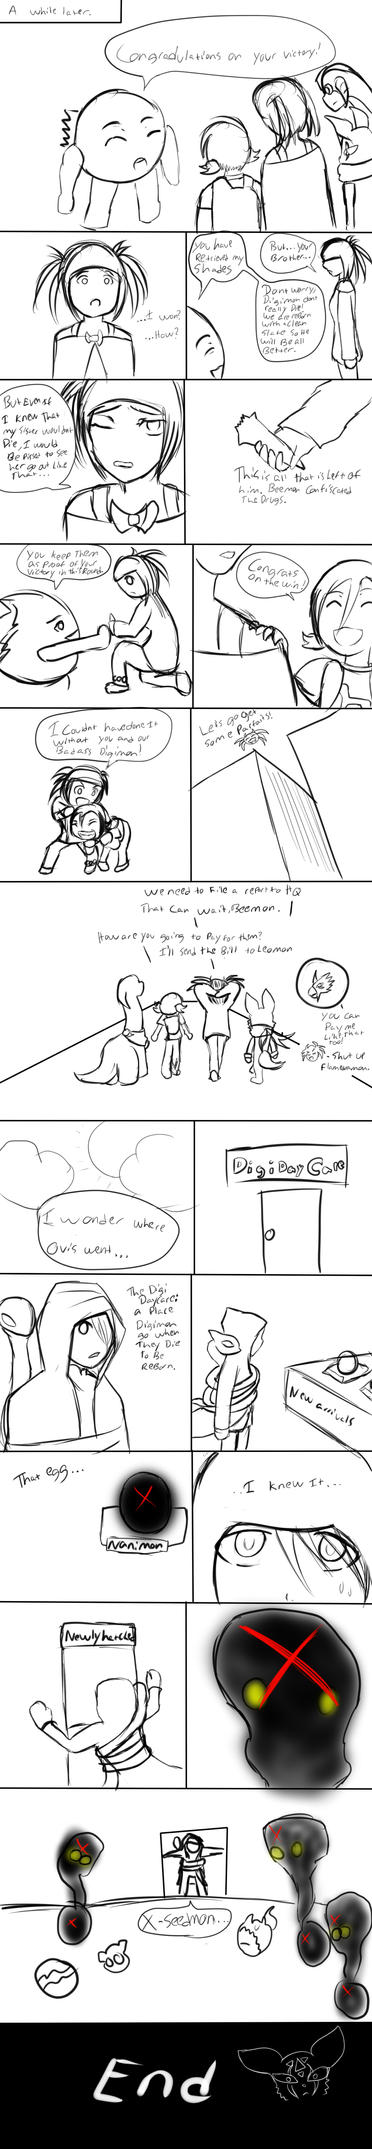 DXT round 2 page 8 (END) by wolfnogins